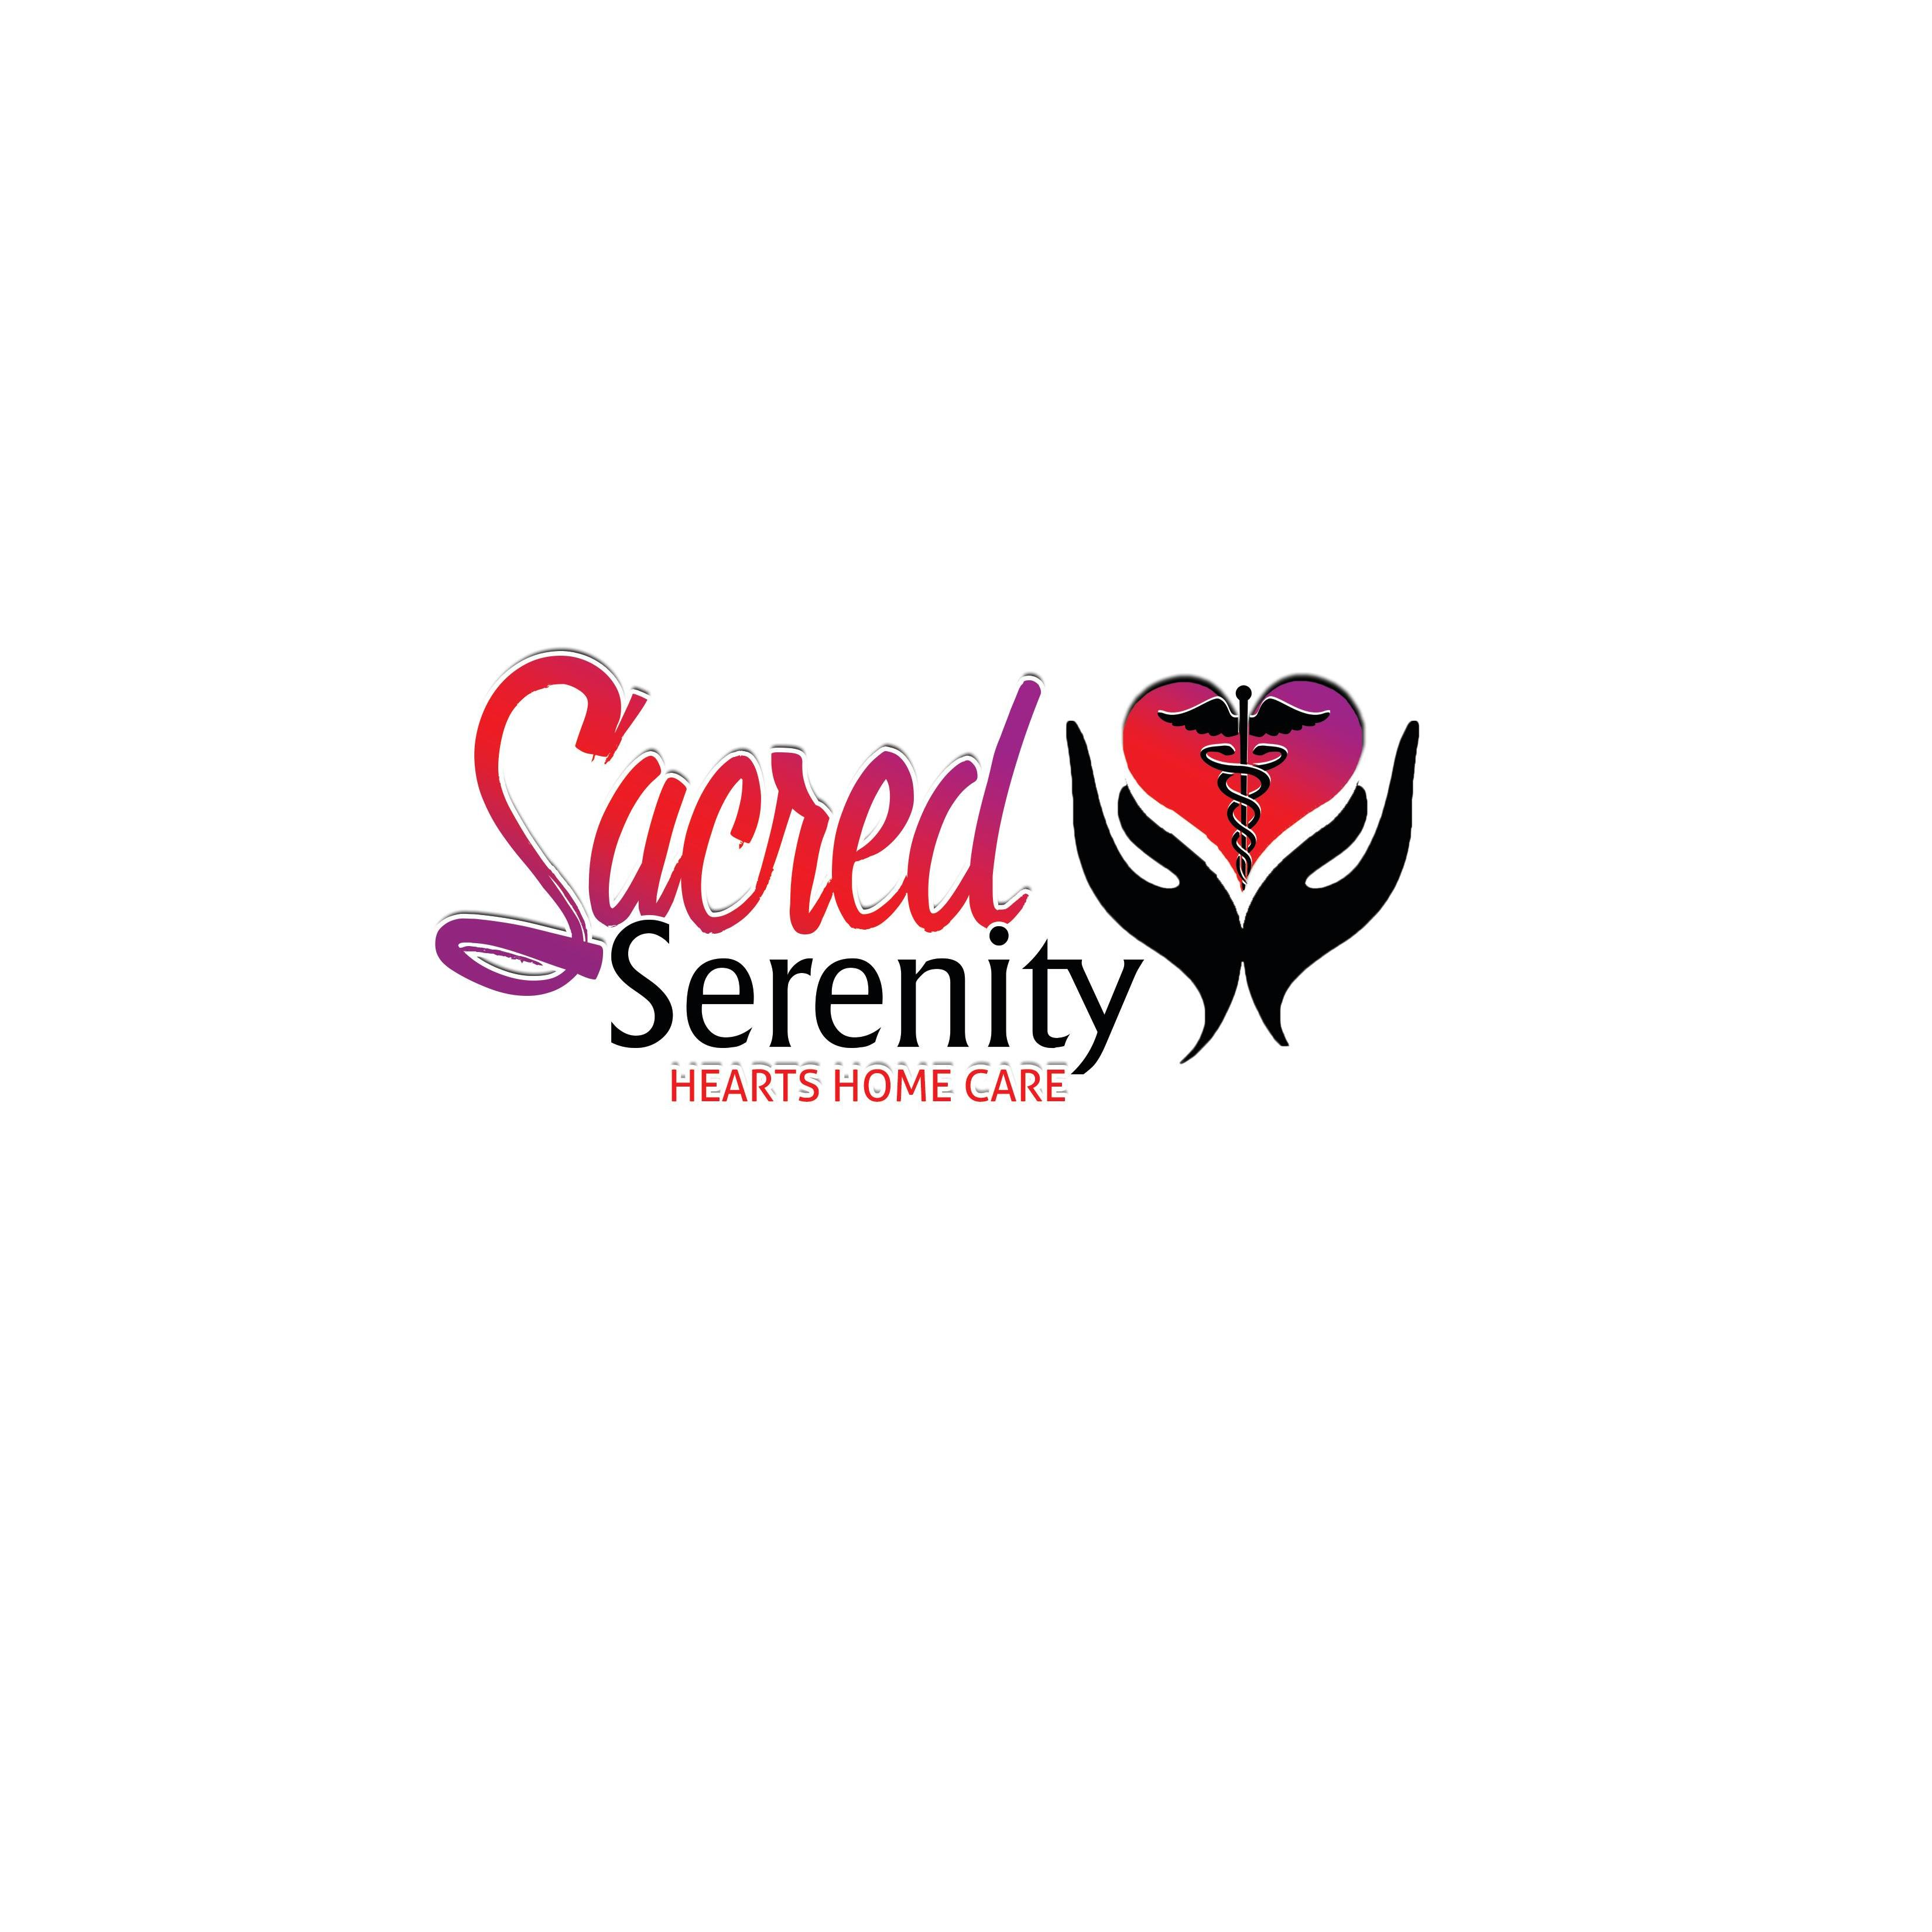 SACRED SERENITY HEARTS HOME CARE